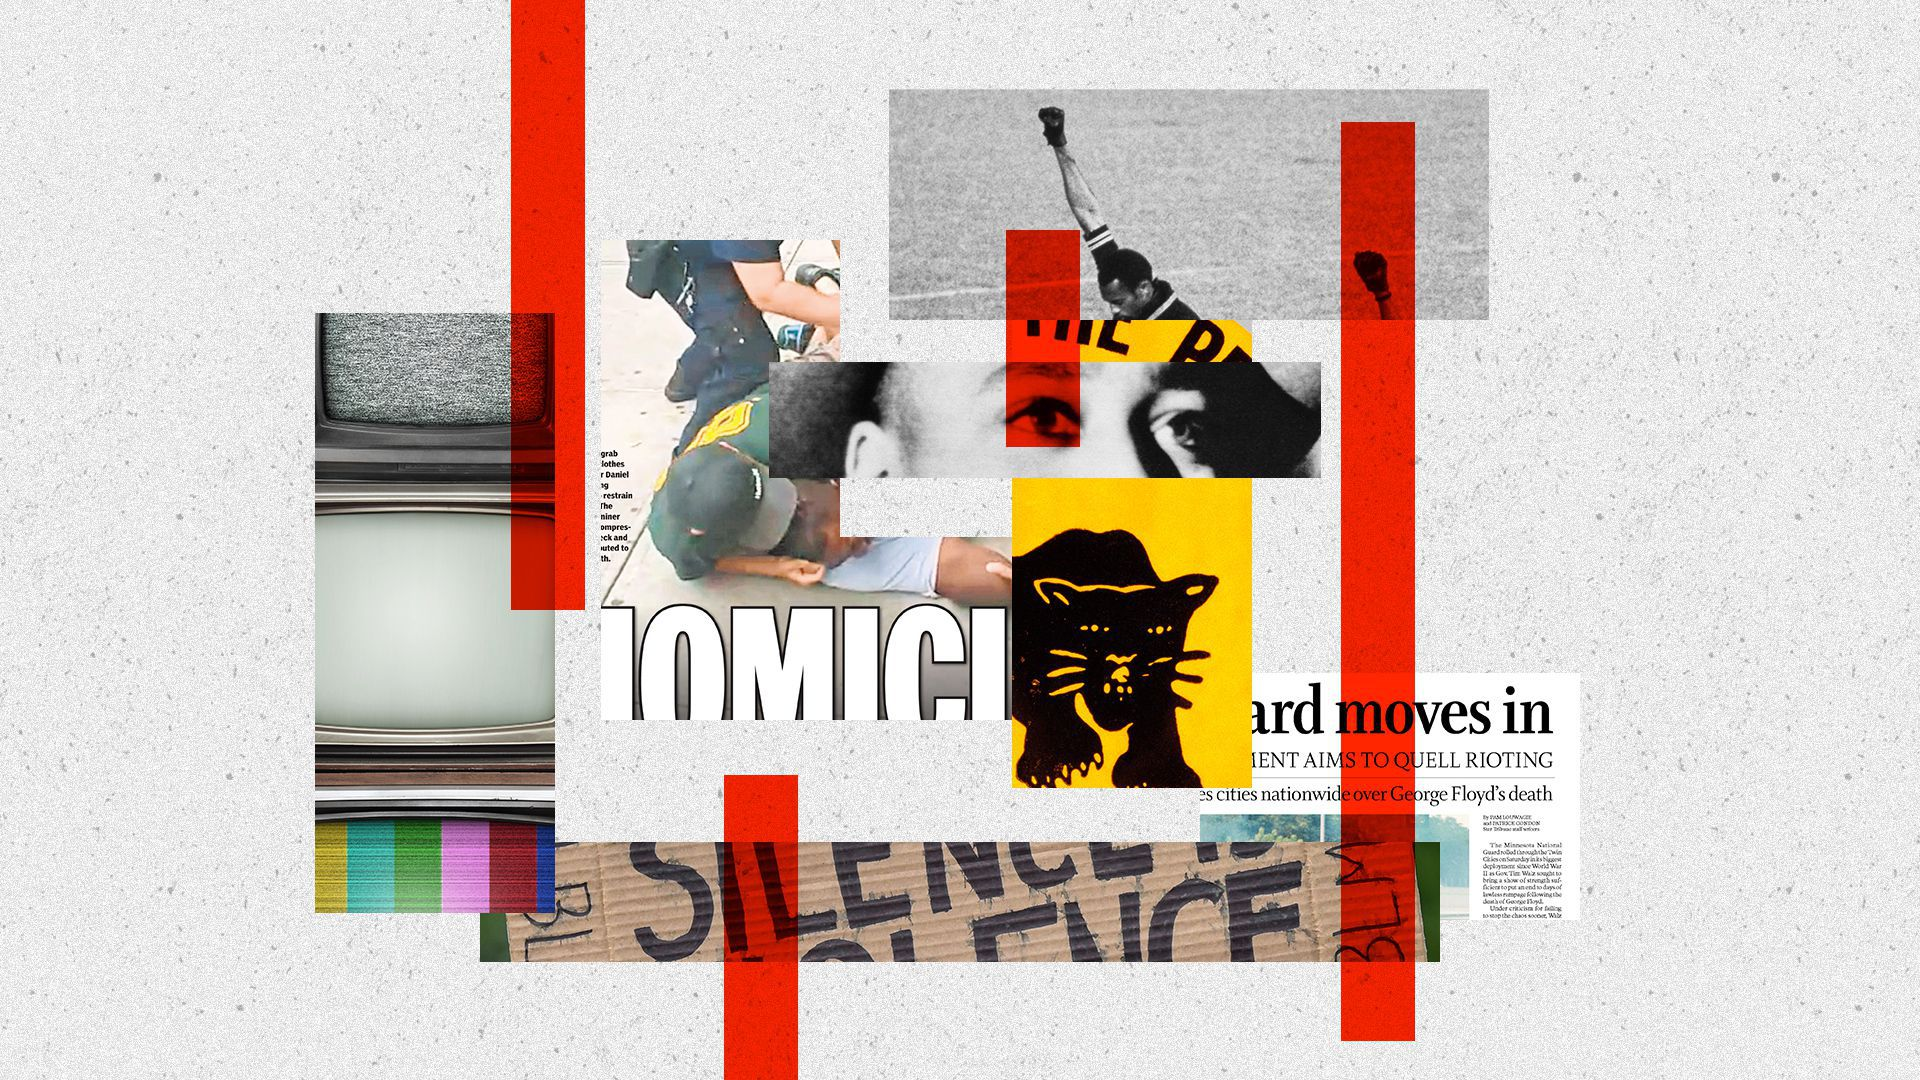 Photo illustration of media, Black Lives Matter protests, Emmett Till, the Daily News cover of Eric Garner's death, a Black power pin, olympic athletes on podium, a Star Tribune cover.